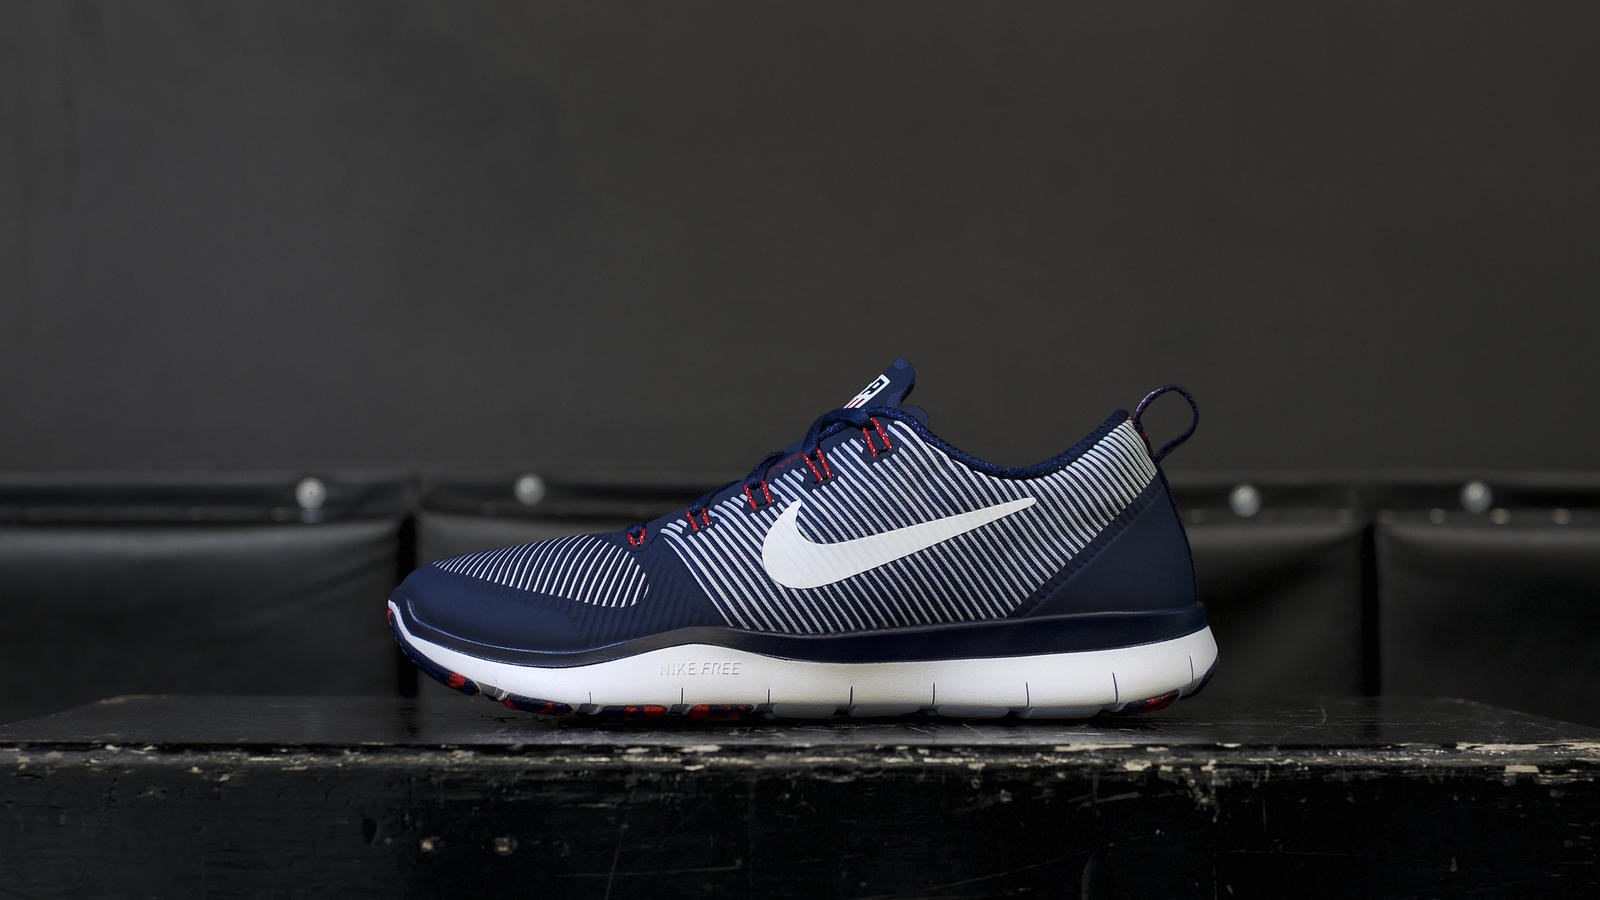 official photos 68dc9 58a8c Nike Free TR Versatility Amp (USA)